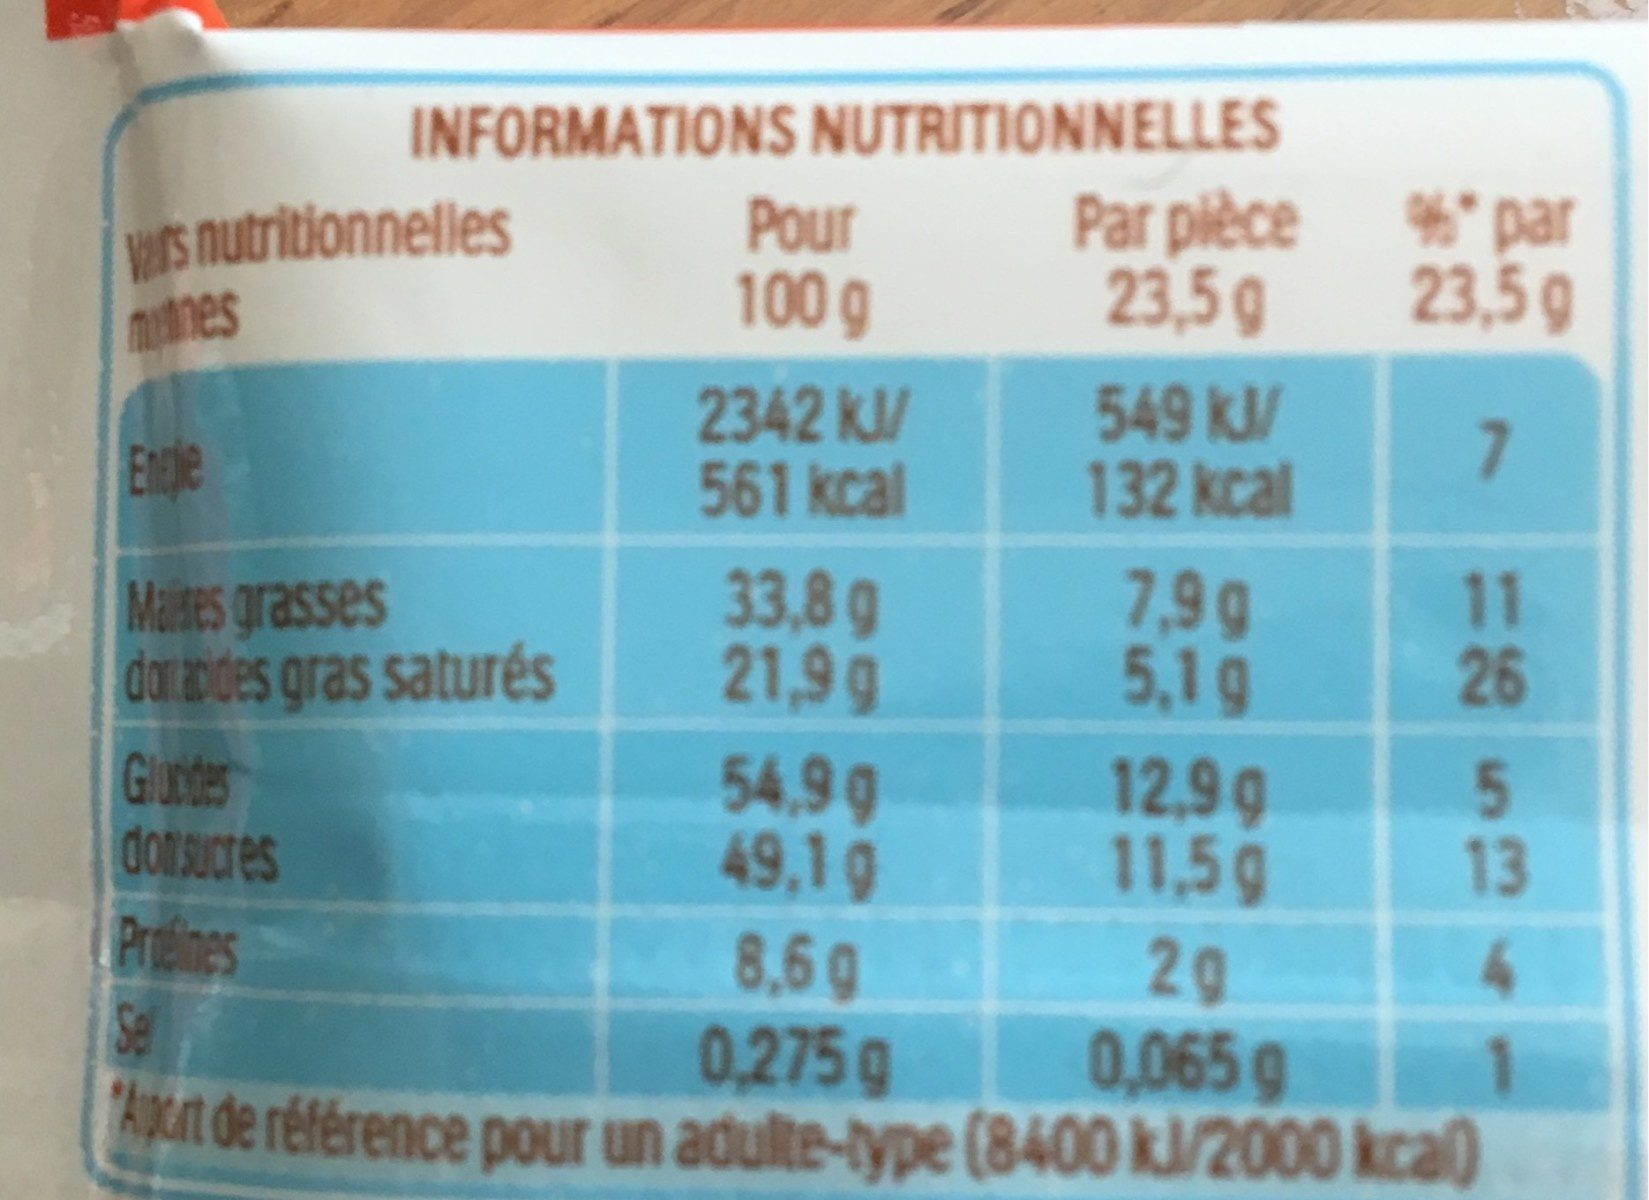 Kinder country barre de cereales enrobee de chocolat 1 barre - Nutrition facts - fr